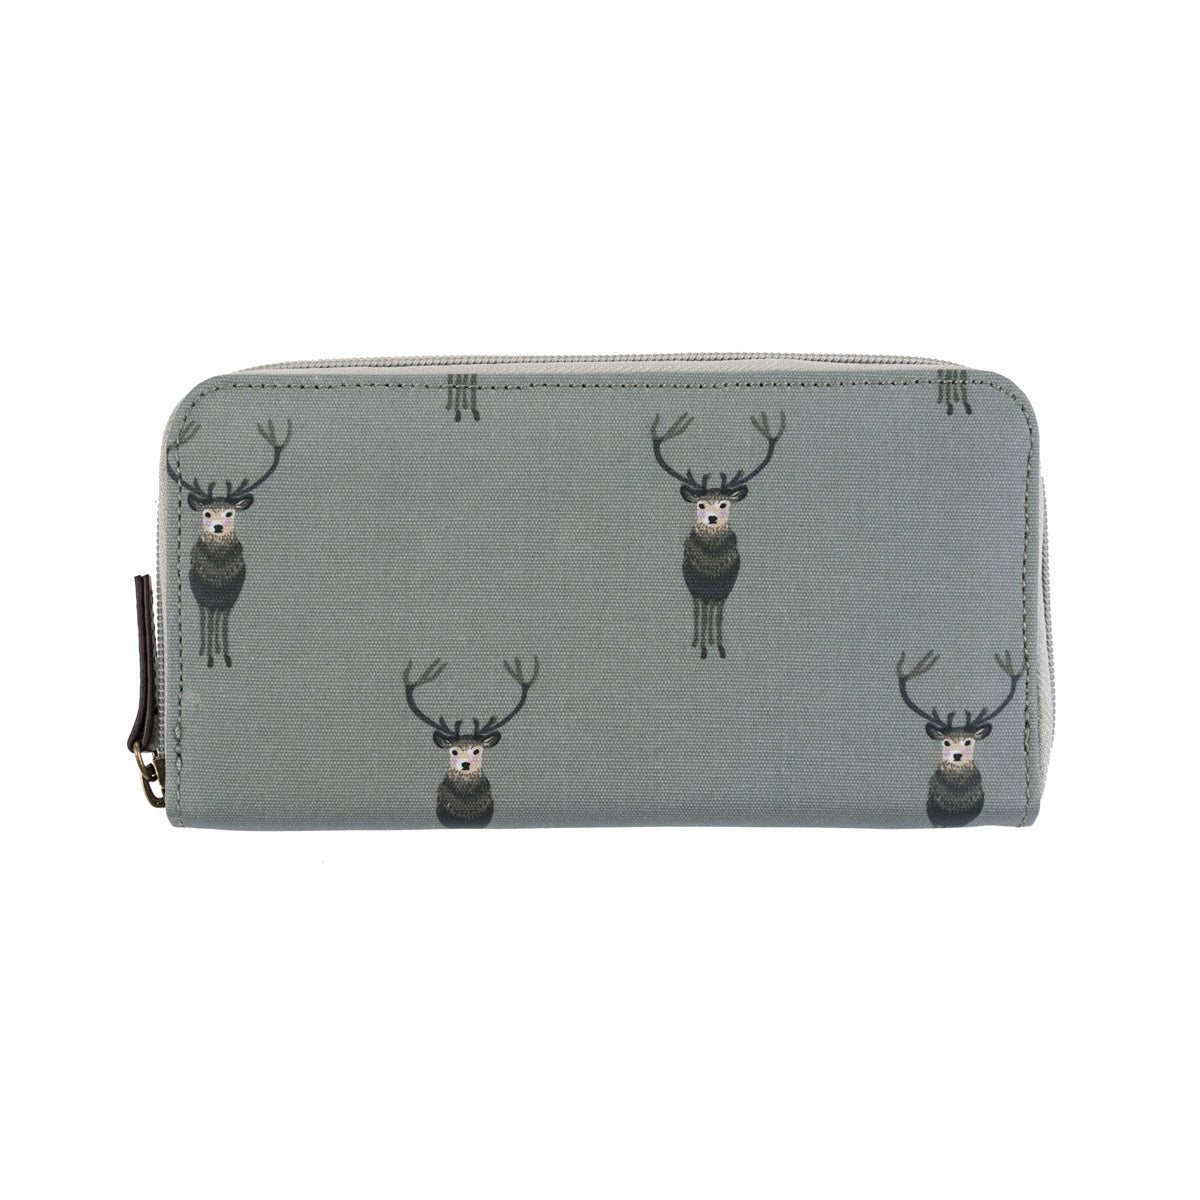 Highland Stag Oilcloth Wallet